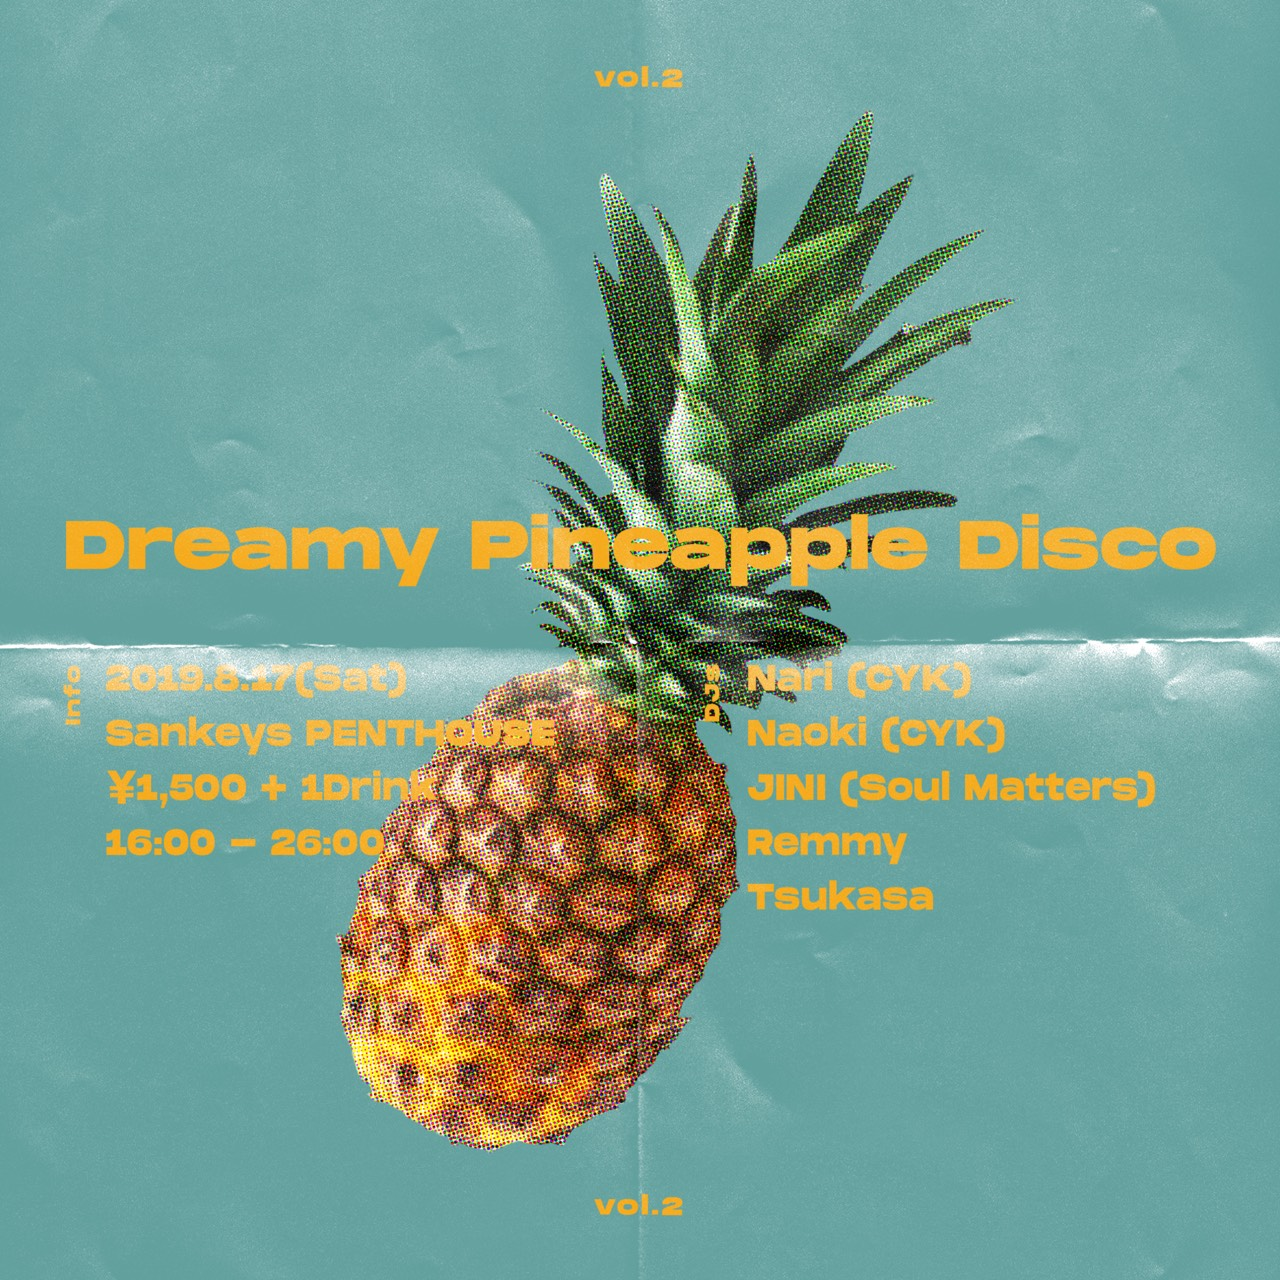 Dreamy Pineapple Disco vol.2